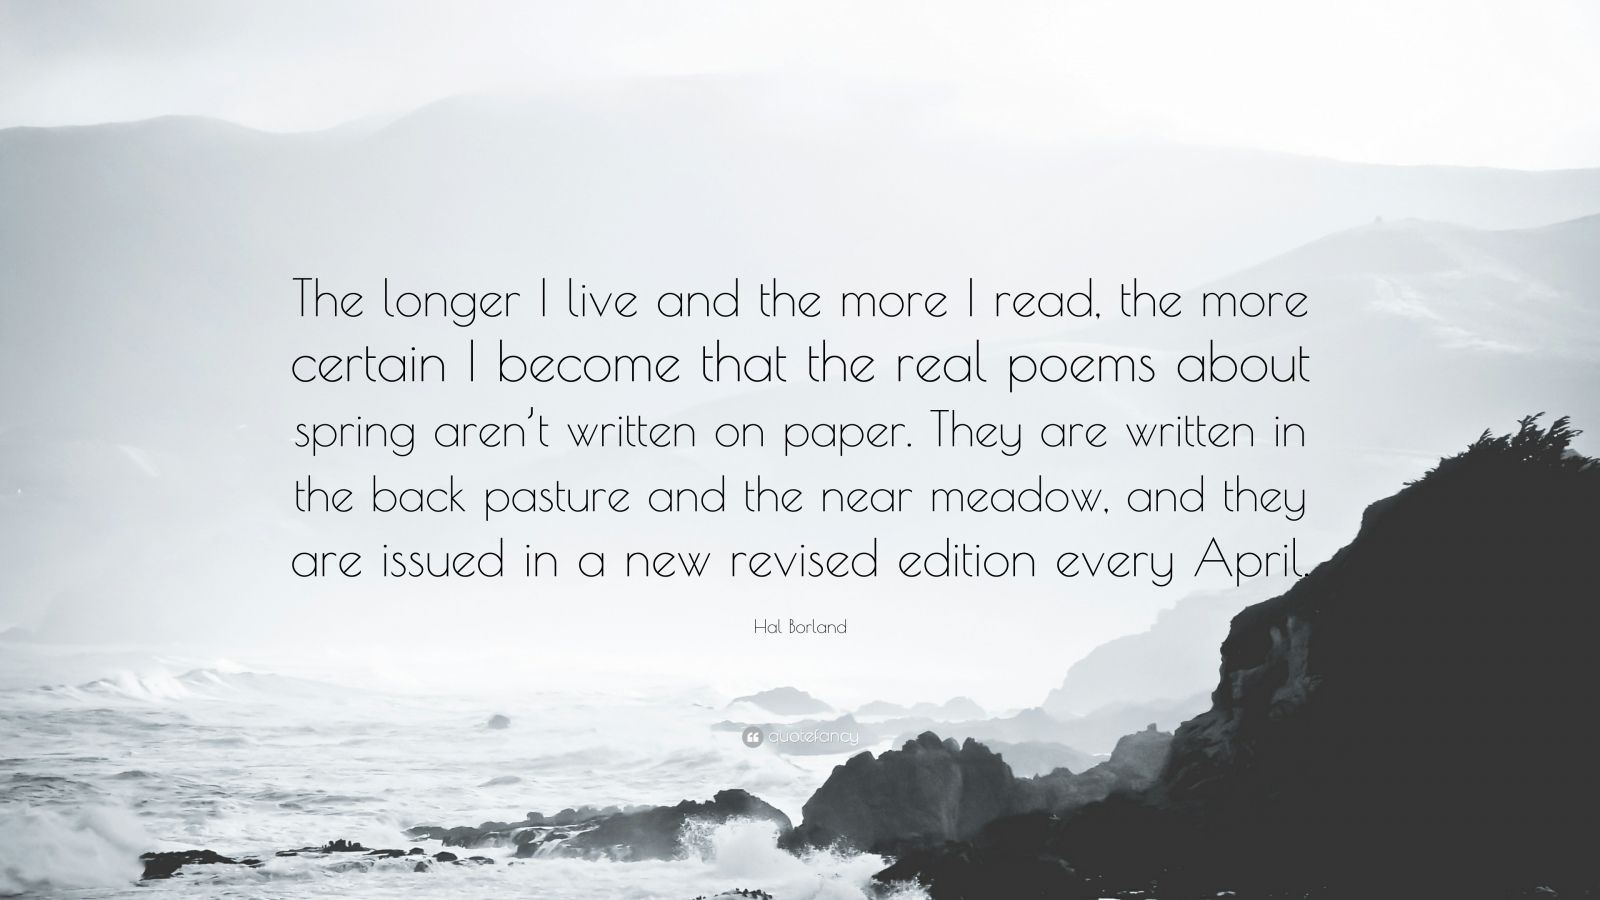 """Hal Borland Quote: """"The longer I live and the more I read, the more certain I become that the real poems about spring aren't written on paper. They are written in the back pasture and the near meadow, and they are issued in a new revised edition every April."""""""